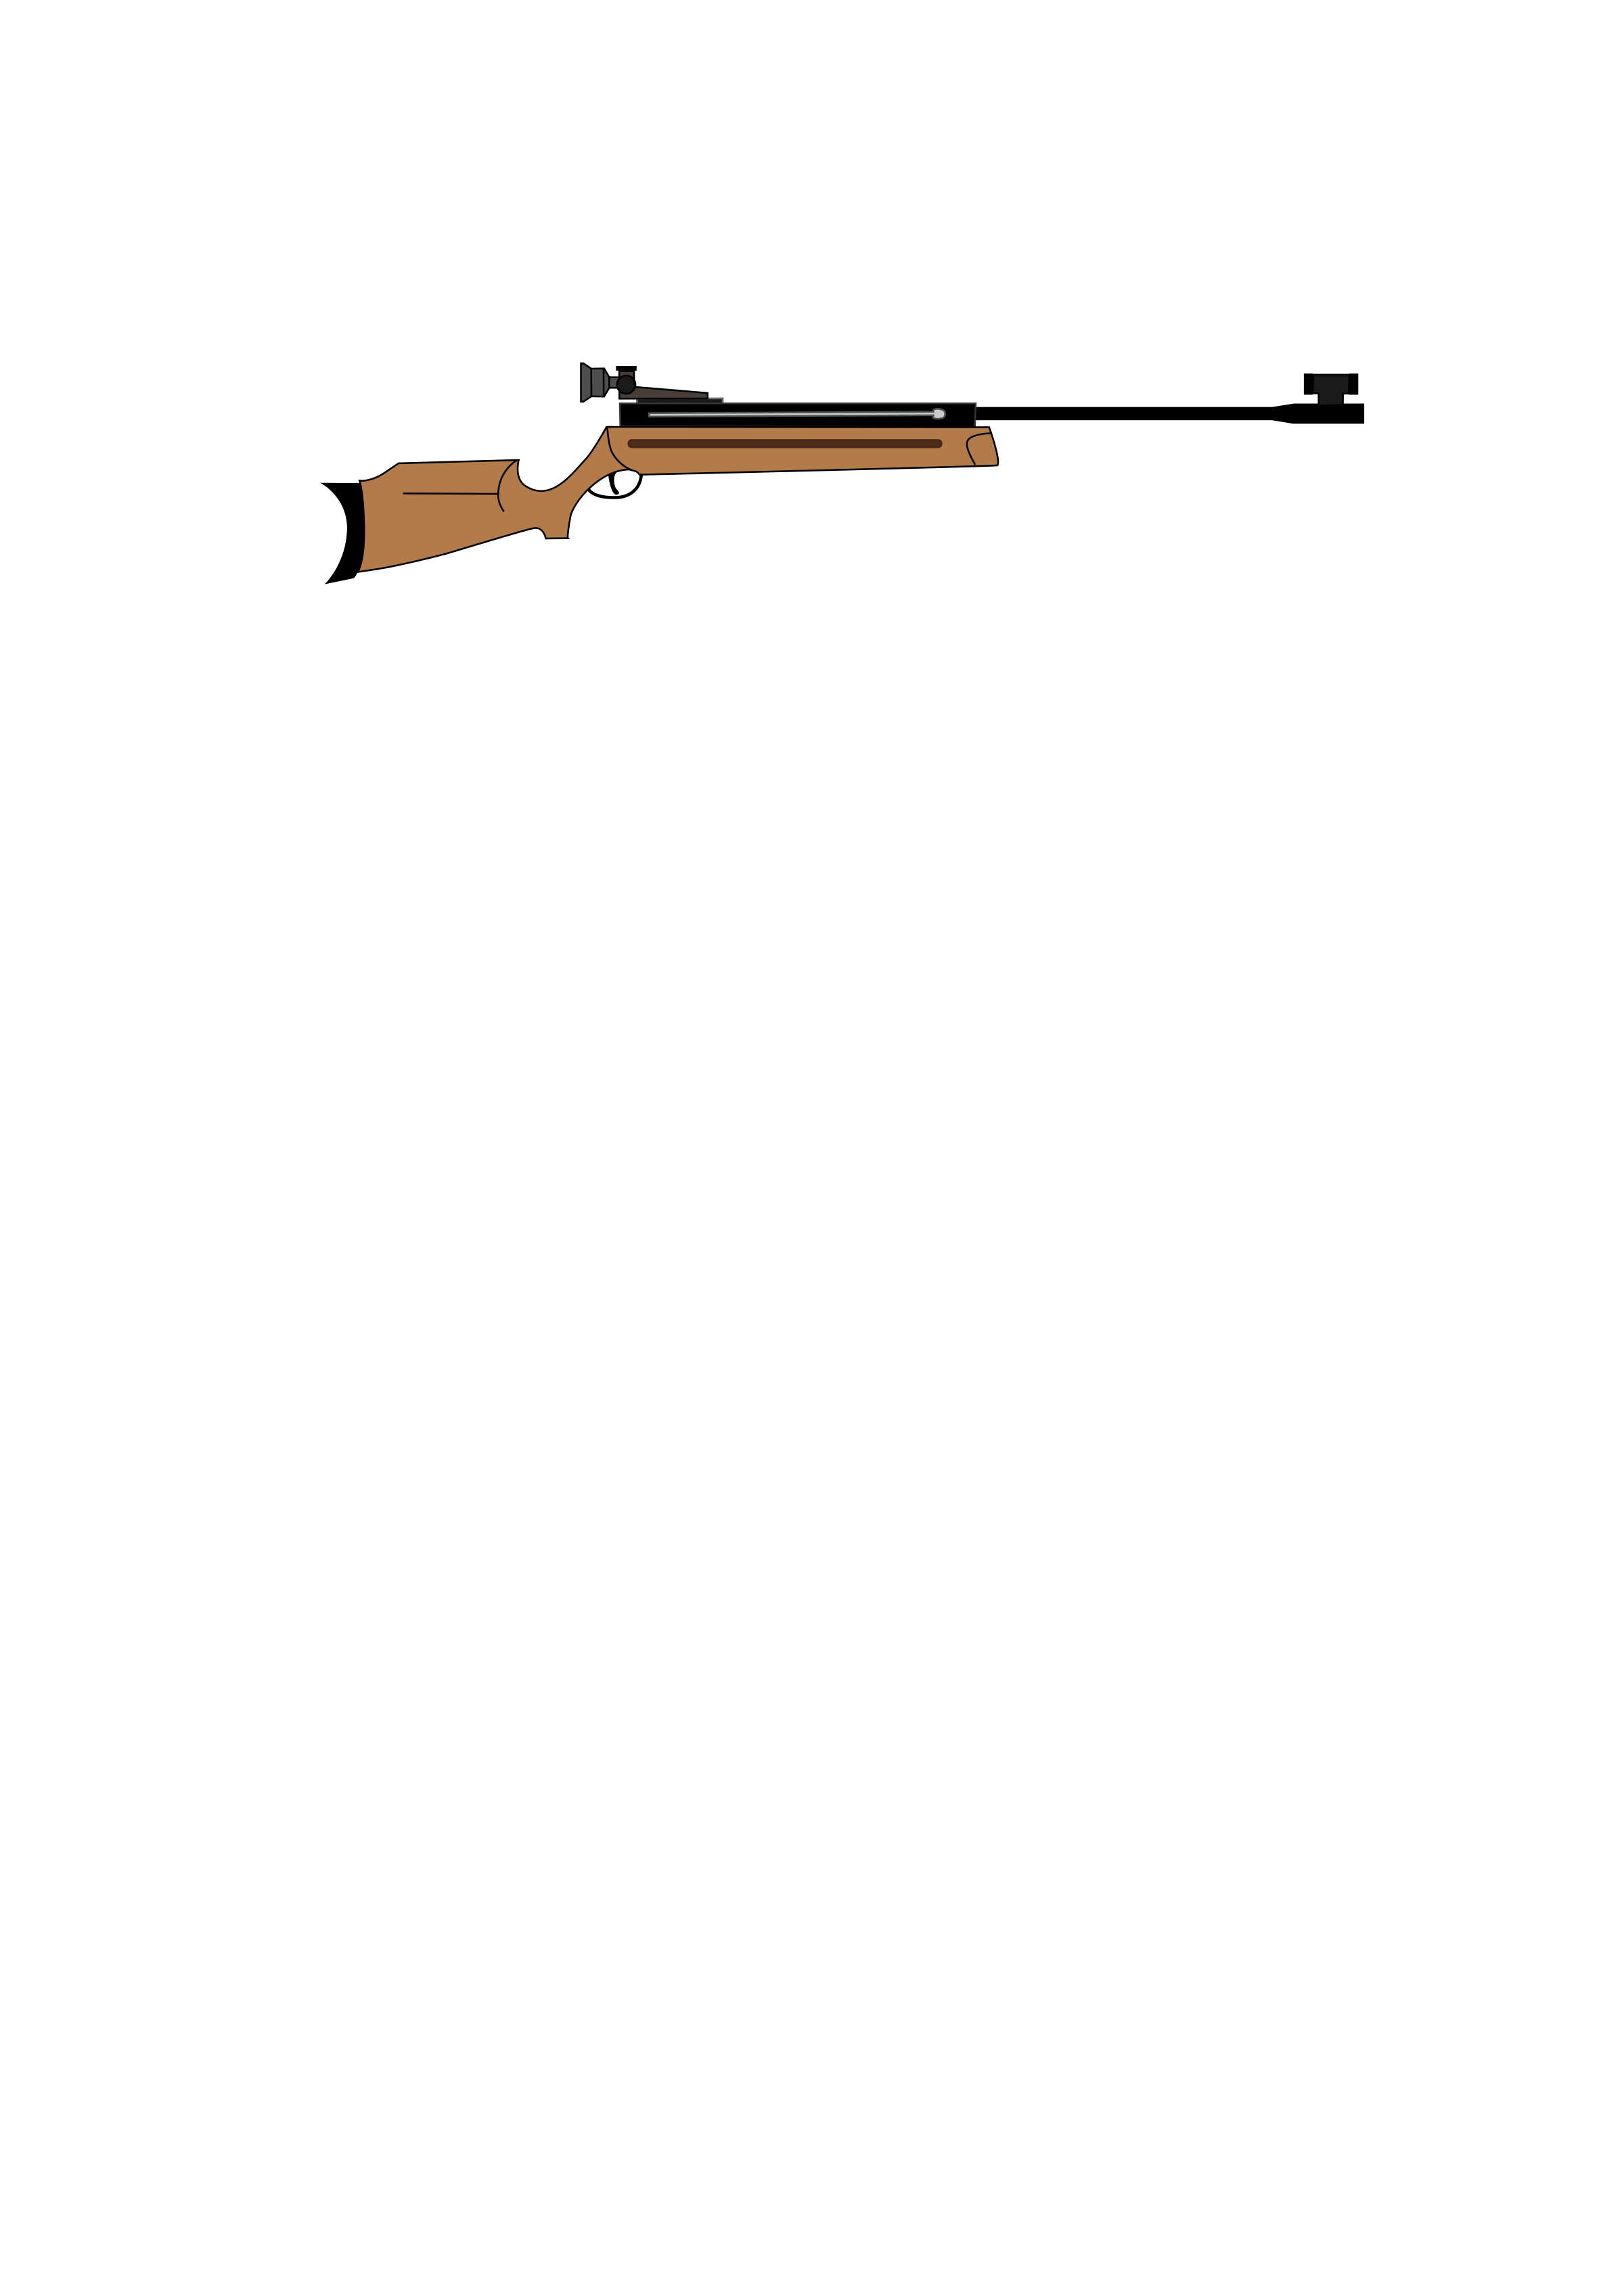 clipart library library Air big image png. Rifle clipart.